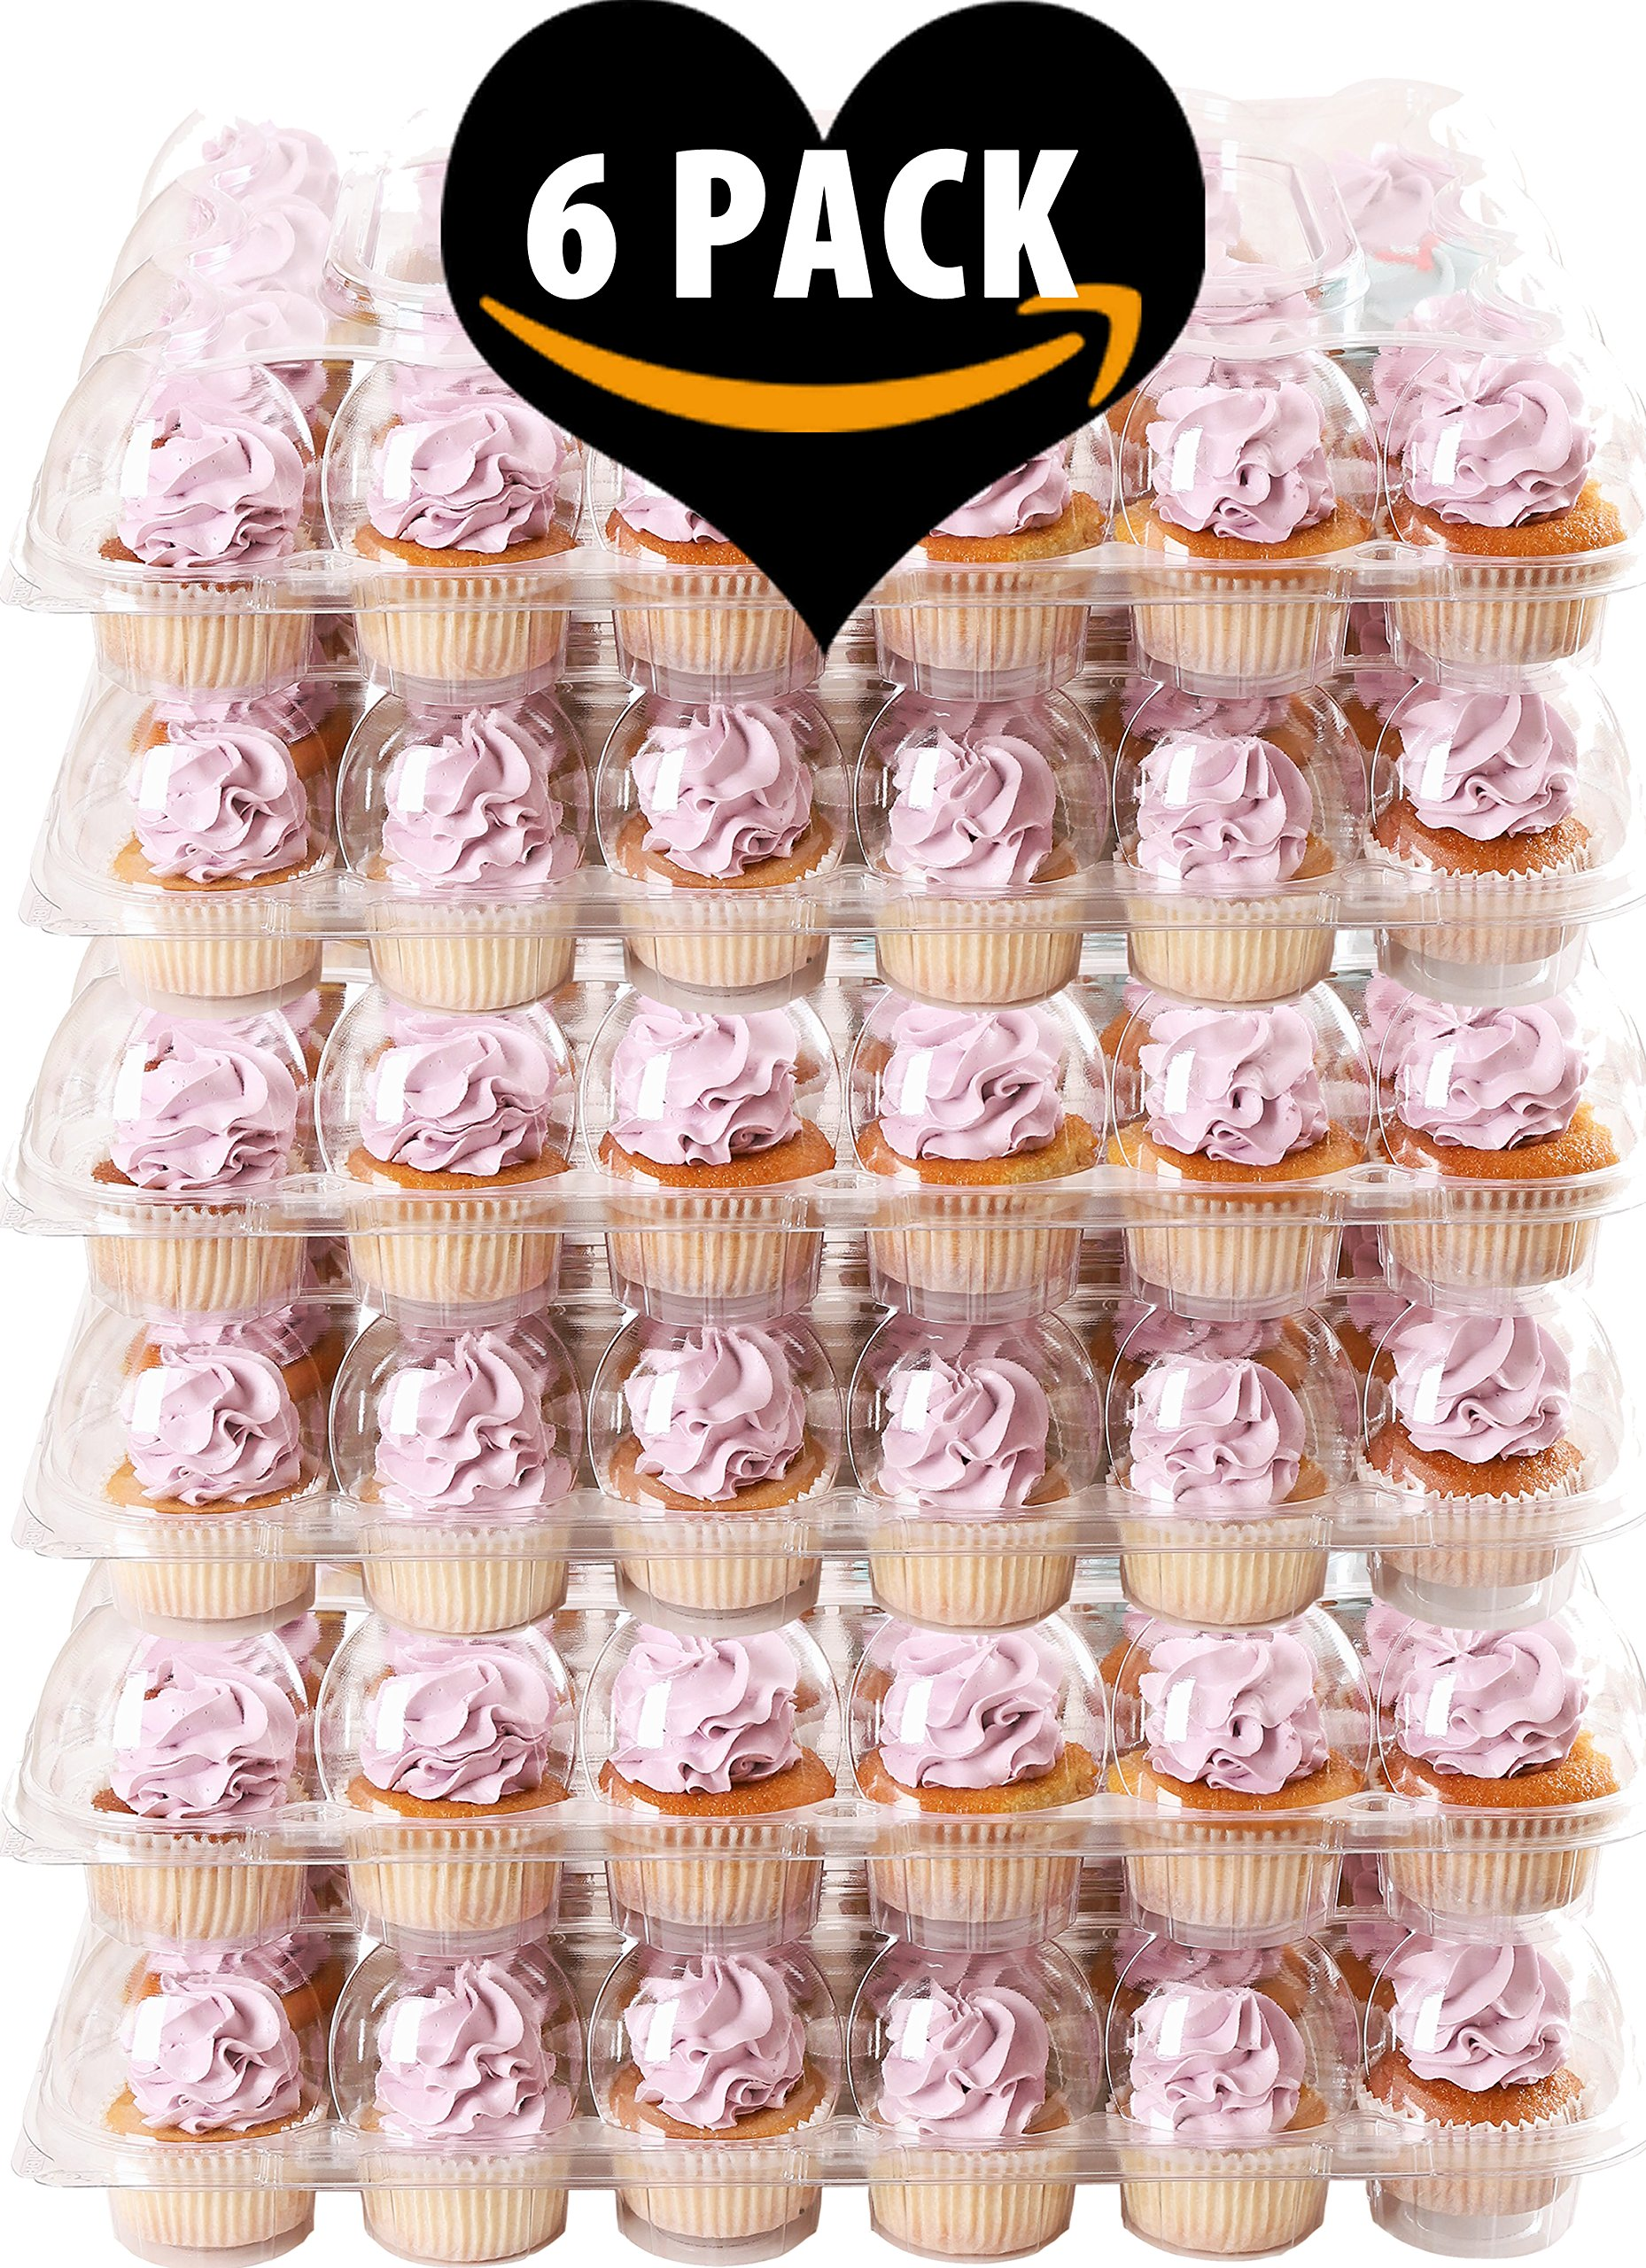 (6 Pack) Fill'nGo Carrier Holds 24 Standard Cupcakes - Ultra Sturdy Cupcake Boxes | Tall Dome Detachable Lid | Clear Plastic Disposable Containers | Storage Tray | Travel Holder | Also Regular Muffins by Cakes of Eden (Image #1)